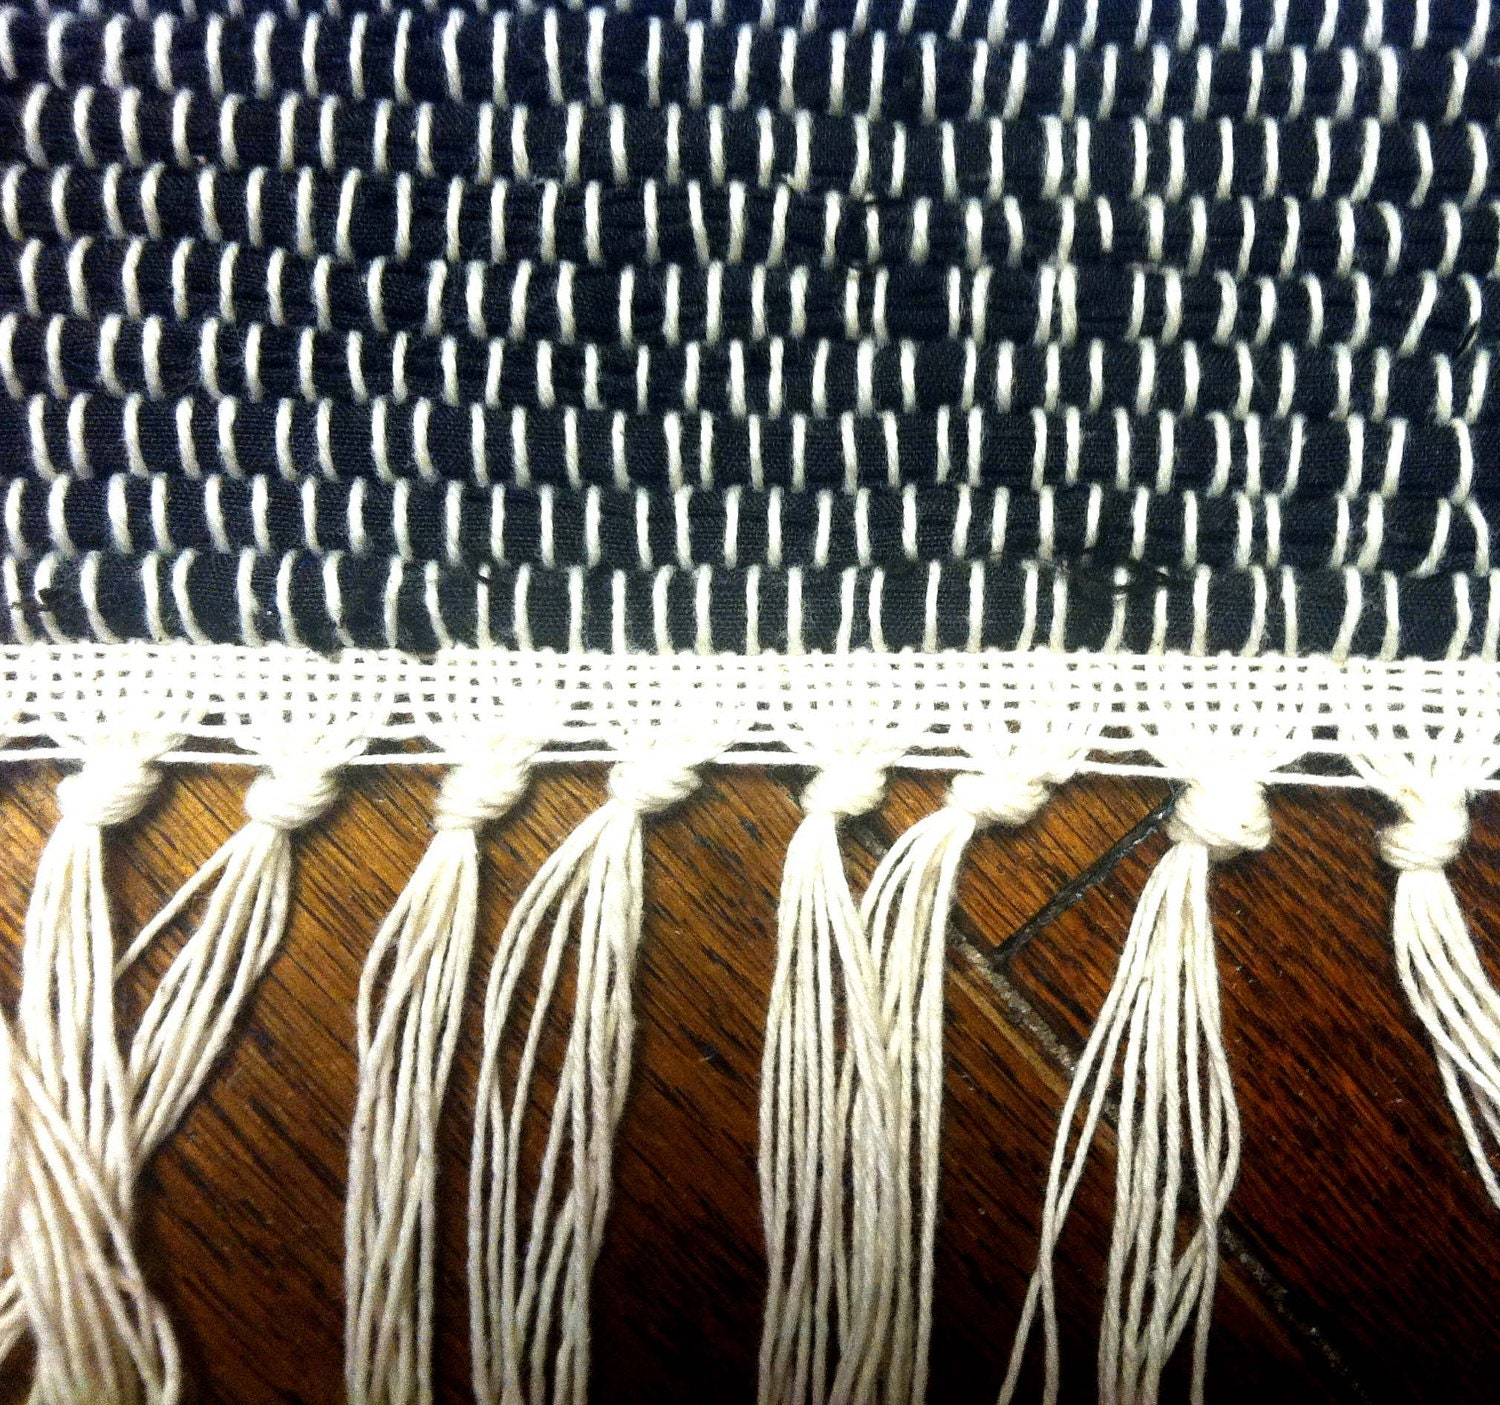 Round Rag Rug Black And White: Handwoven Rag Rug Black And White With Fringe